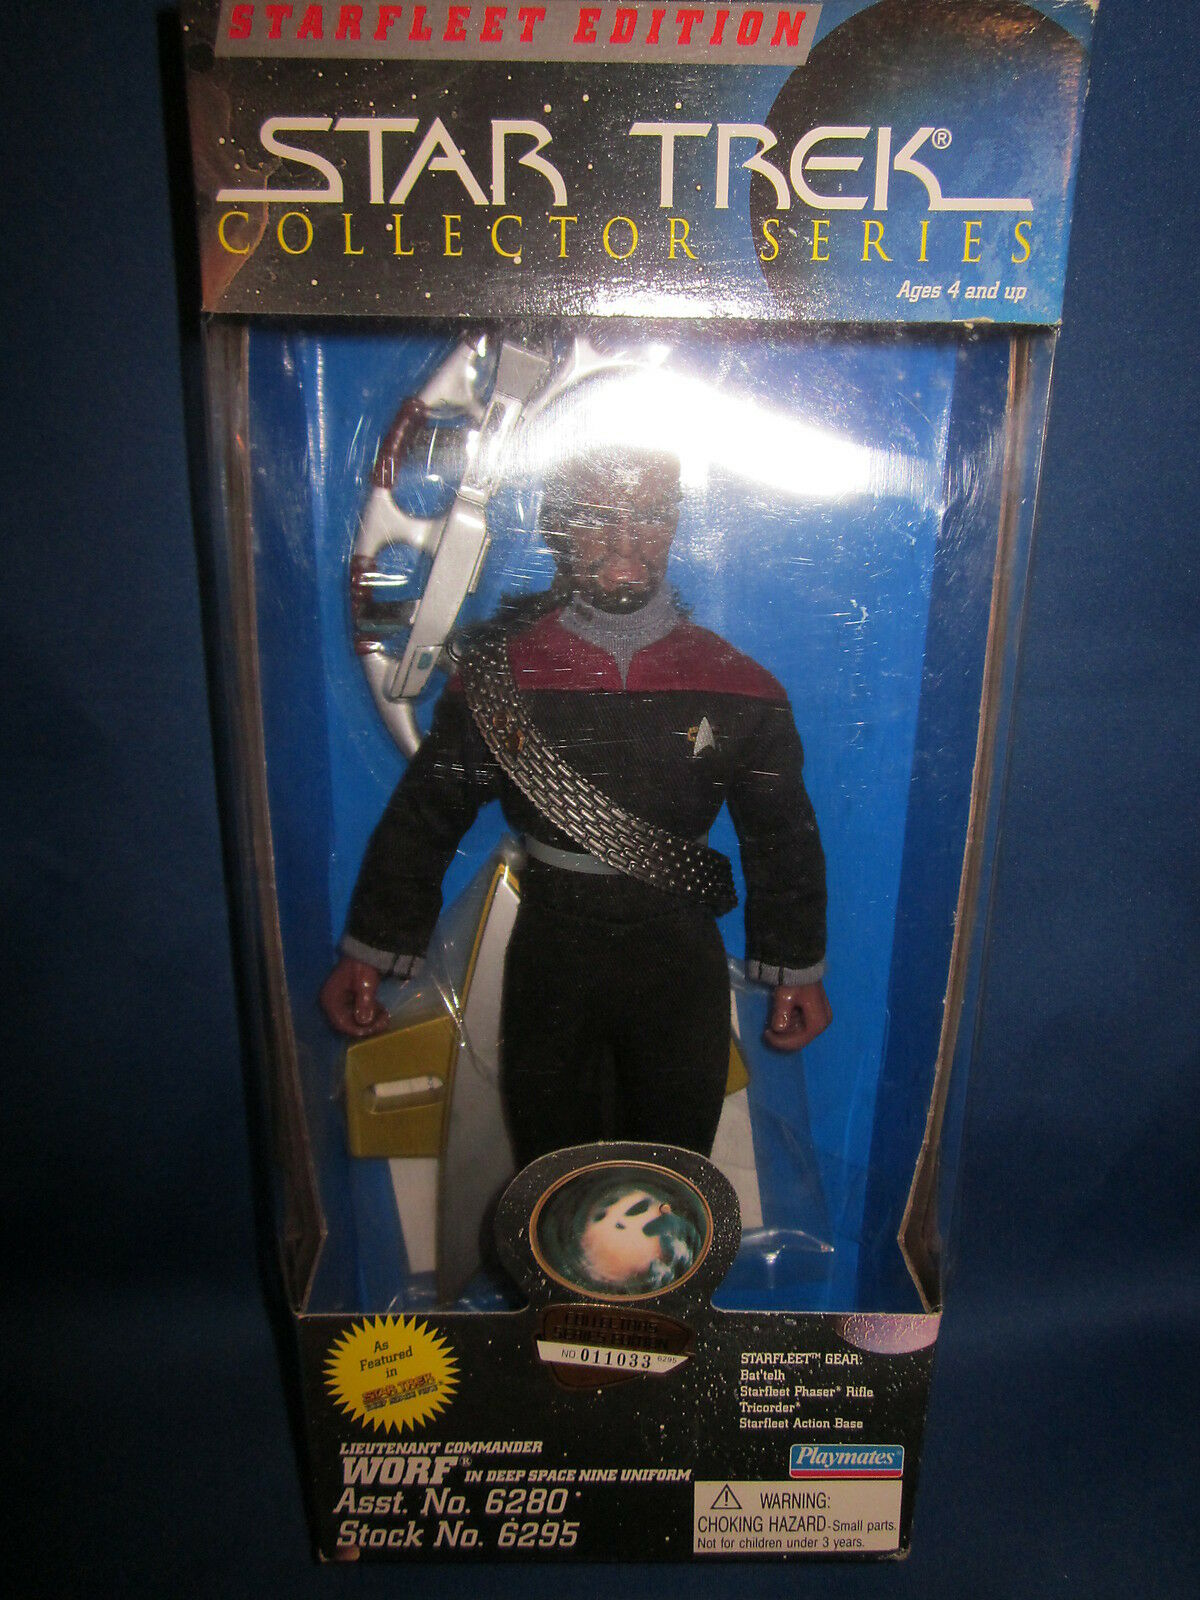 1995 Playmates Star Trek Starfleet Edition Collector Series Worf